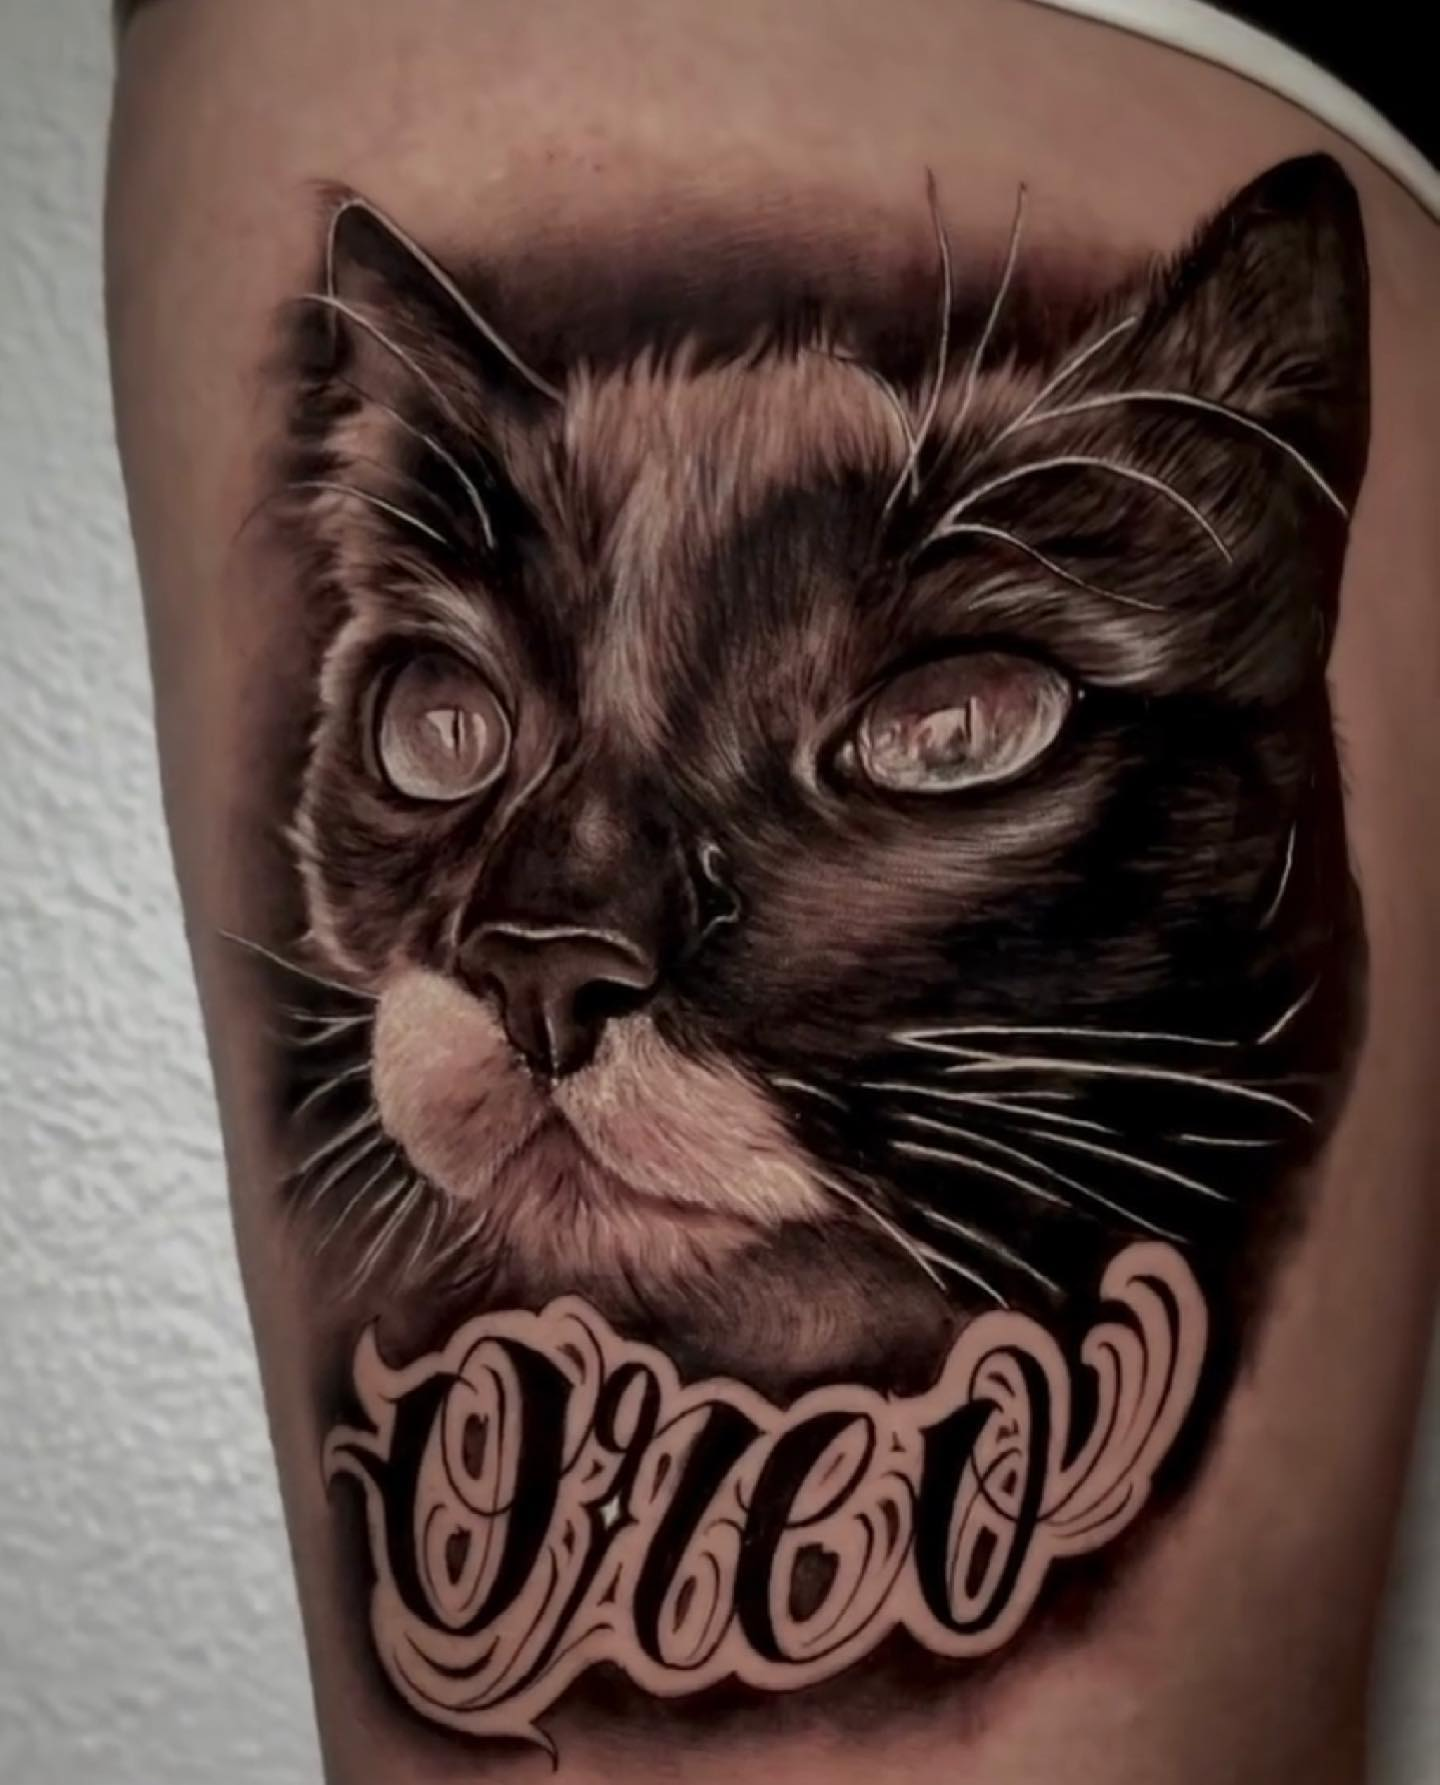 Incredible cat portrait from youngcaviartattoo 🙀 • Omar will be back with us from the 13th of May and has some space towards the end of June! For all enquiries, please contact either Omar himself or the shop through the enquiry form. Link in bio ✨ • •